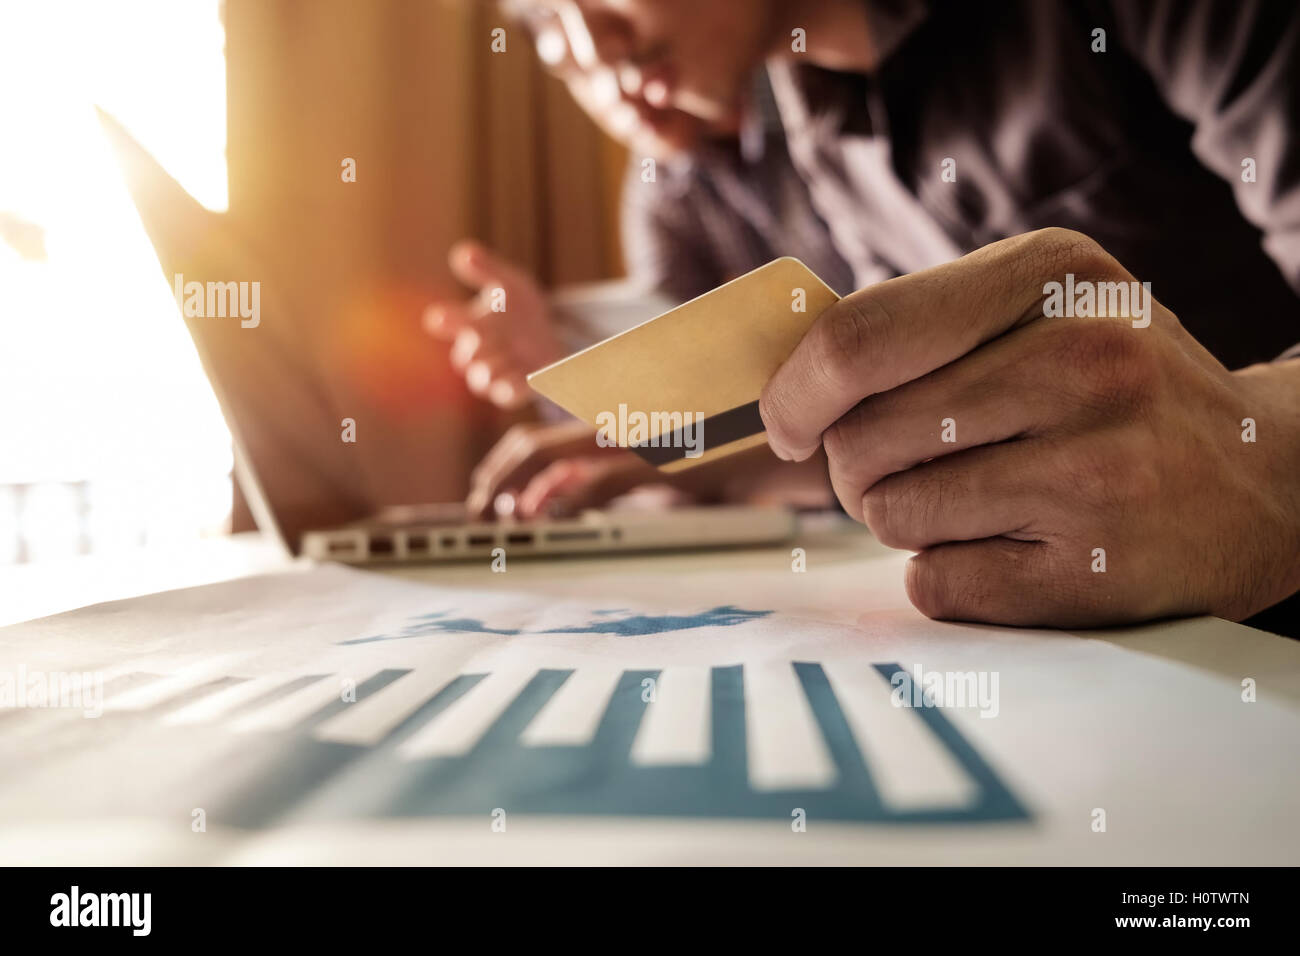 Business man hands using laptop and holding credit card with digital layer effect diagram as Online shopping concept - Stock Image